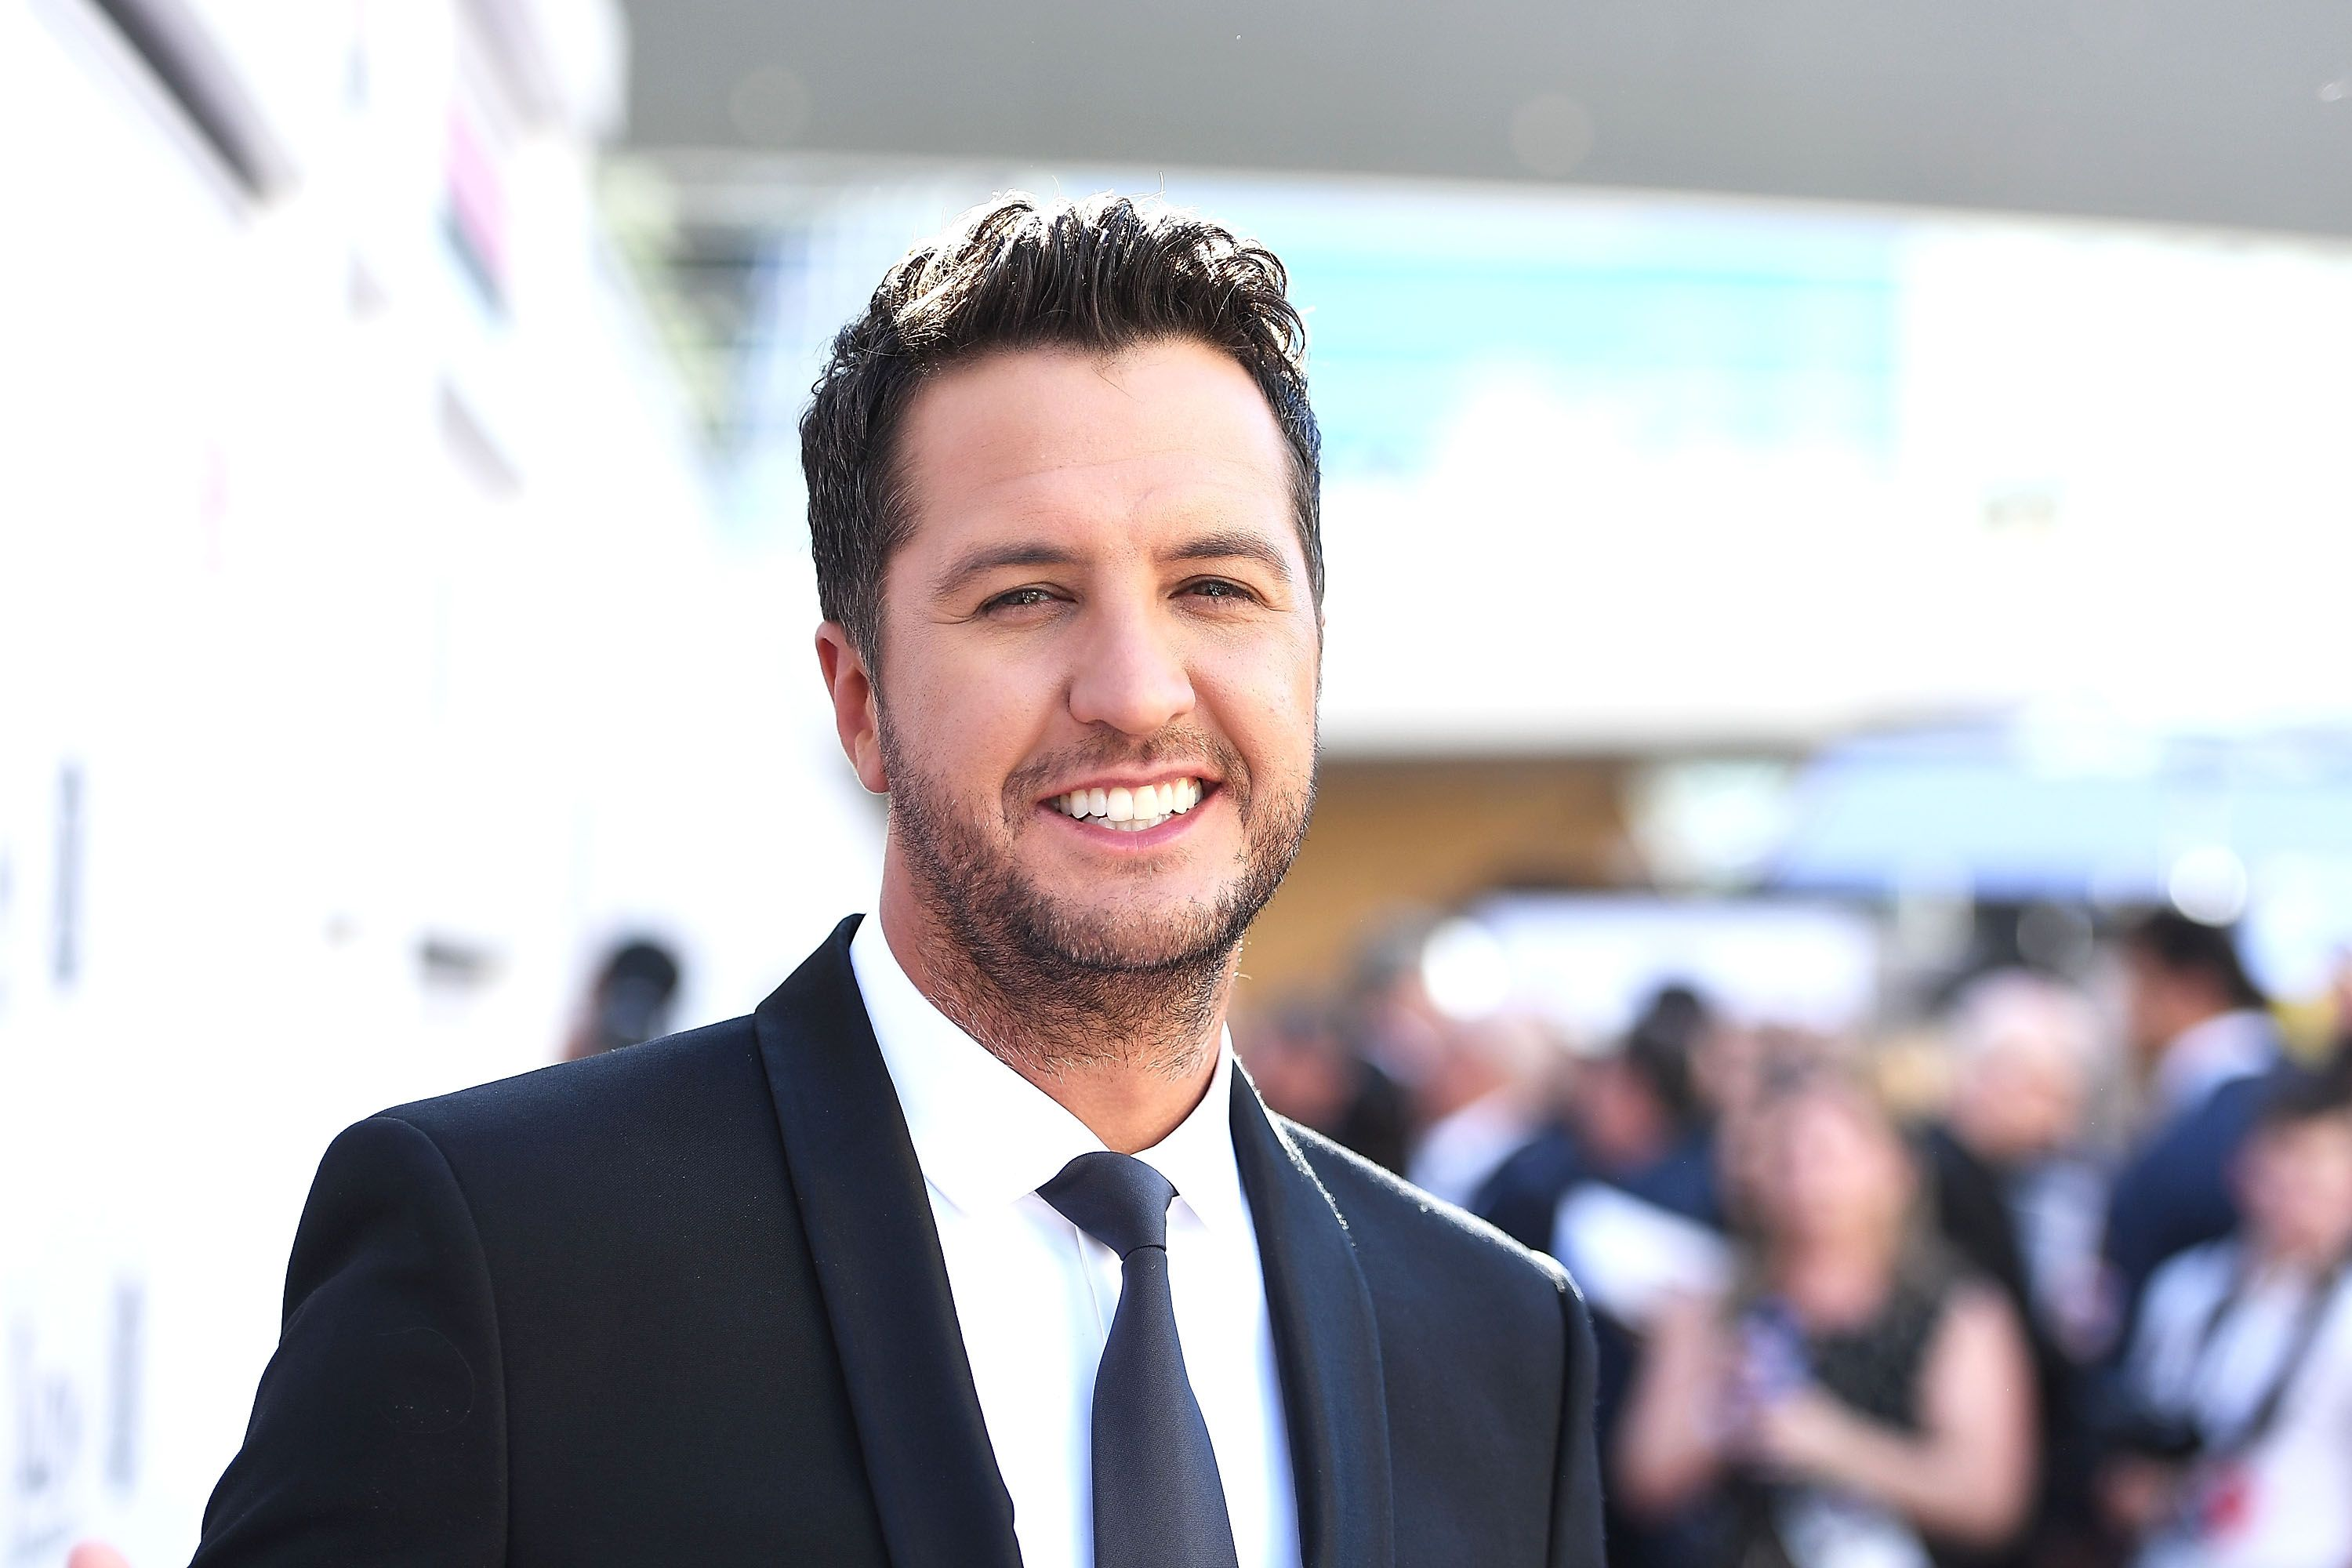 Luke Bryan at the 52nd Academy Of Country Music Awards at T-Mobile Arena on April 2, 2017 | Photo: Getty Images